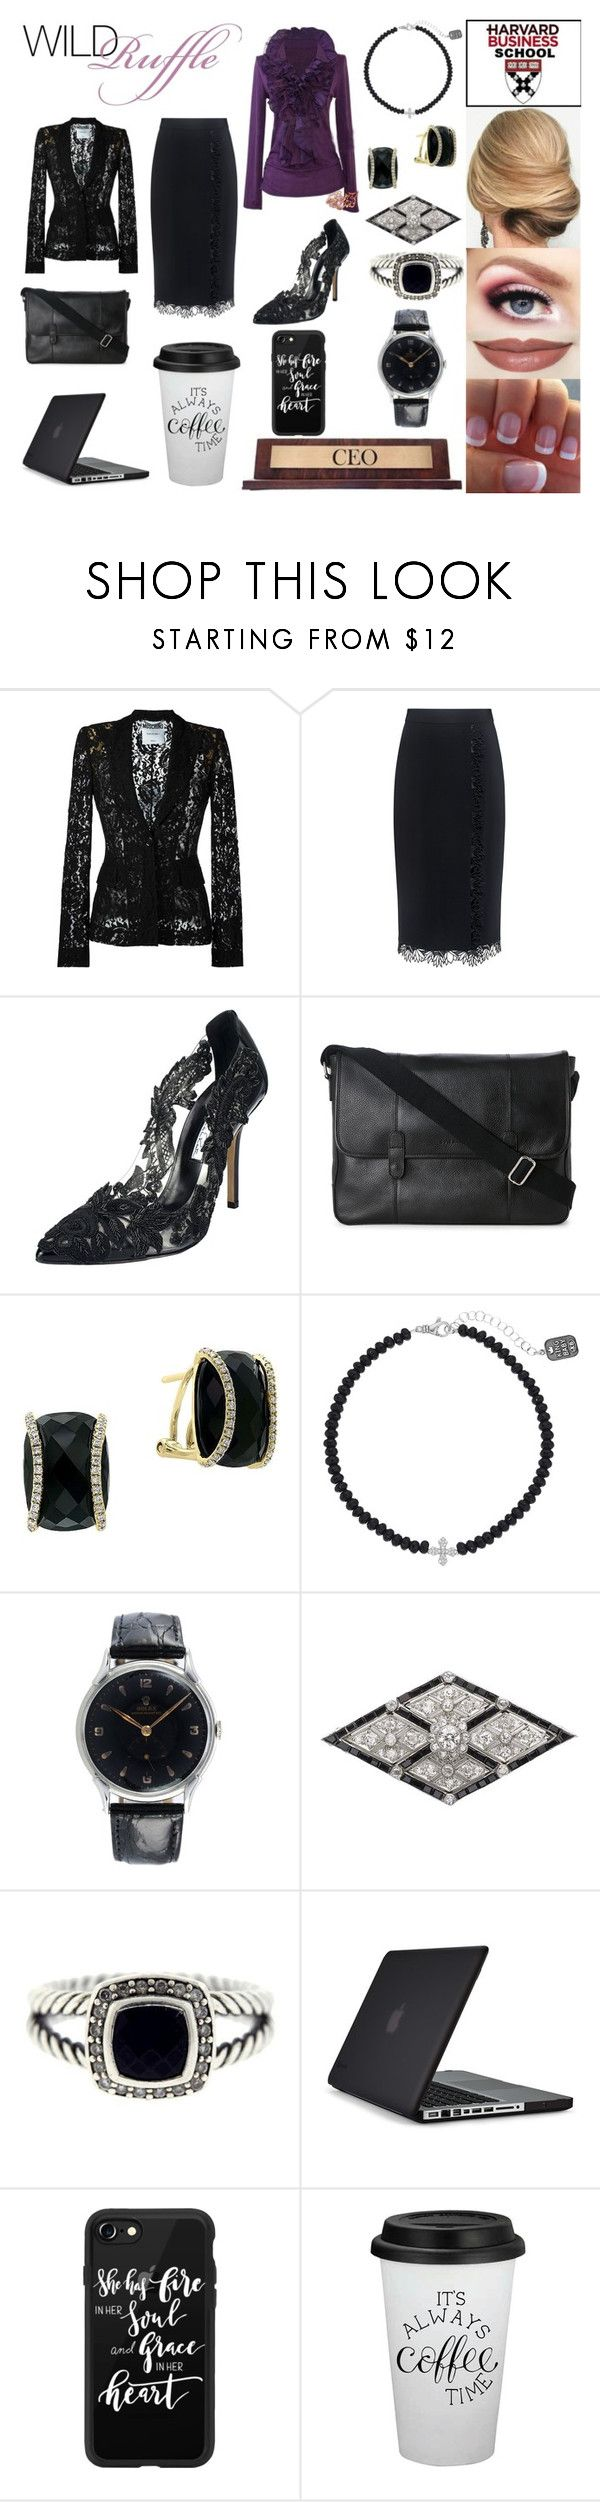 """""""Ruffles In The Boardroom"""" by bethnjulia ❤ liked on Polyvore featuring Moschino, A.L.C., Oscar de la Renta, Cole Haan, Effy Jewelry, King Baby Studio, Rolex, David Yurman, Speck and Casetify"""